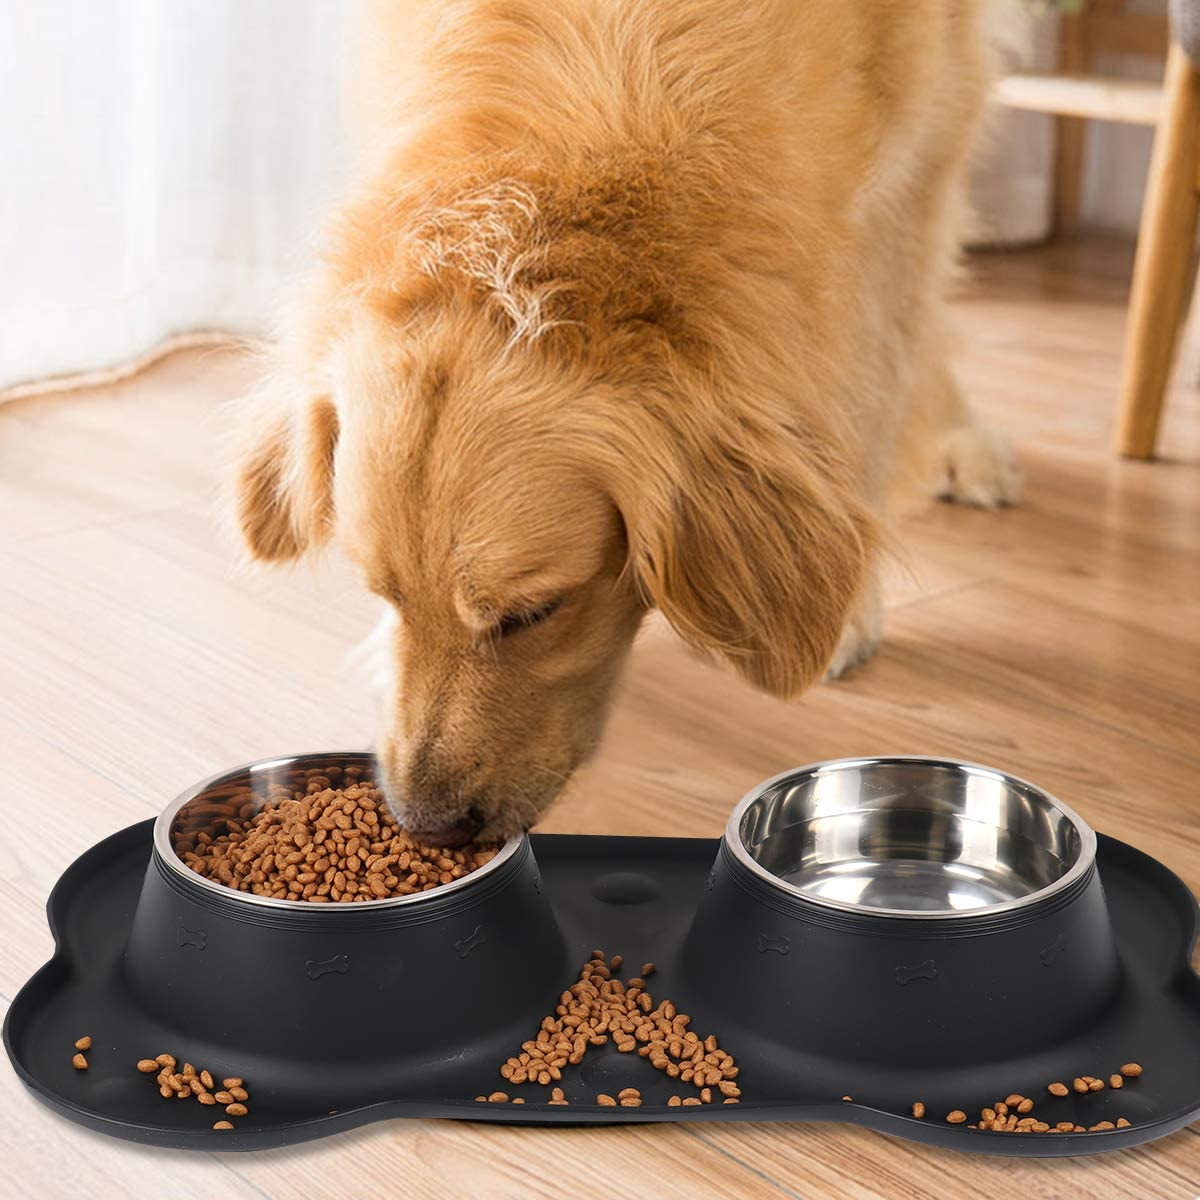 Patimate Stainless Steel Dog Bowl - Pet Bowls Food Water Feeder with Non-Skid No Spill Silicone Mat and Strong Suction Cup for Pets Small Medium Large Dogs